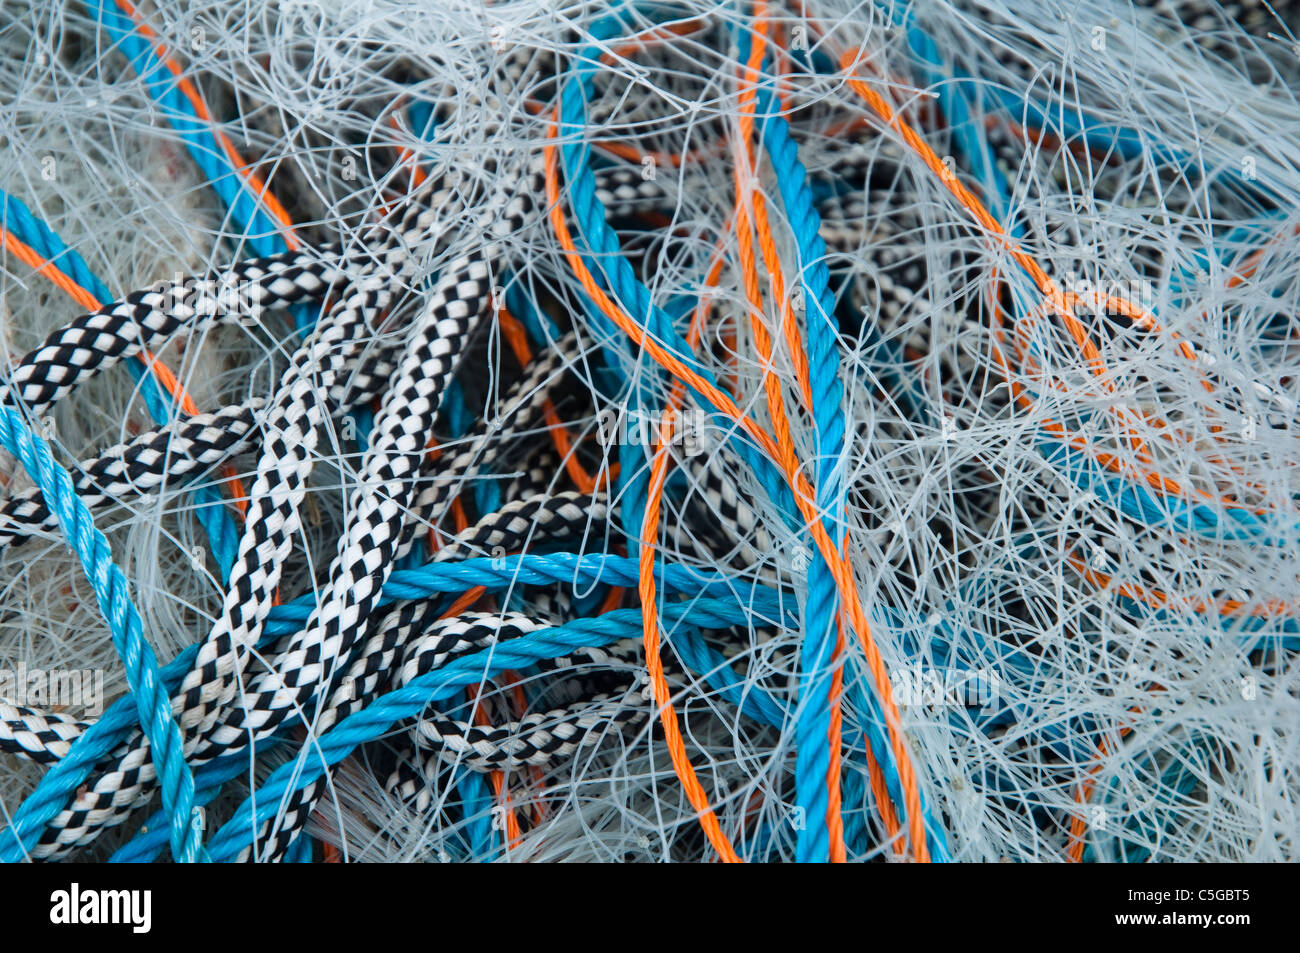 All tangled up - in a tangle - colourful abstract of  fishermans / fishing nets and ropes / lines. UK - Stock Image